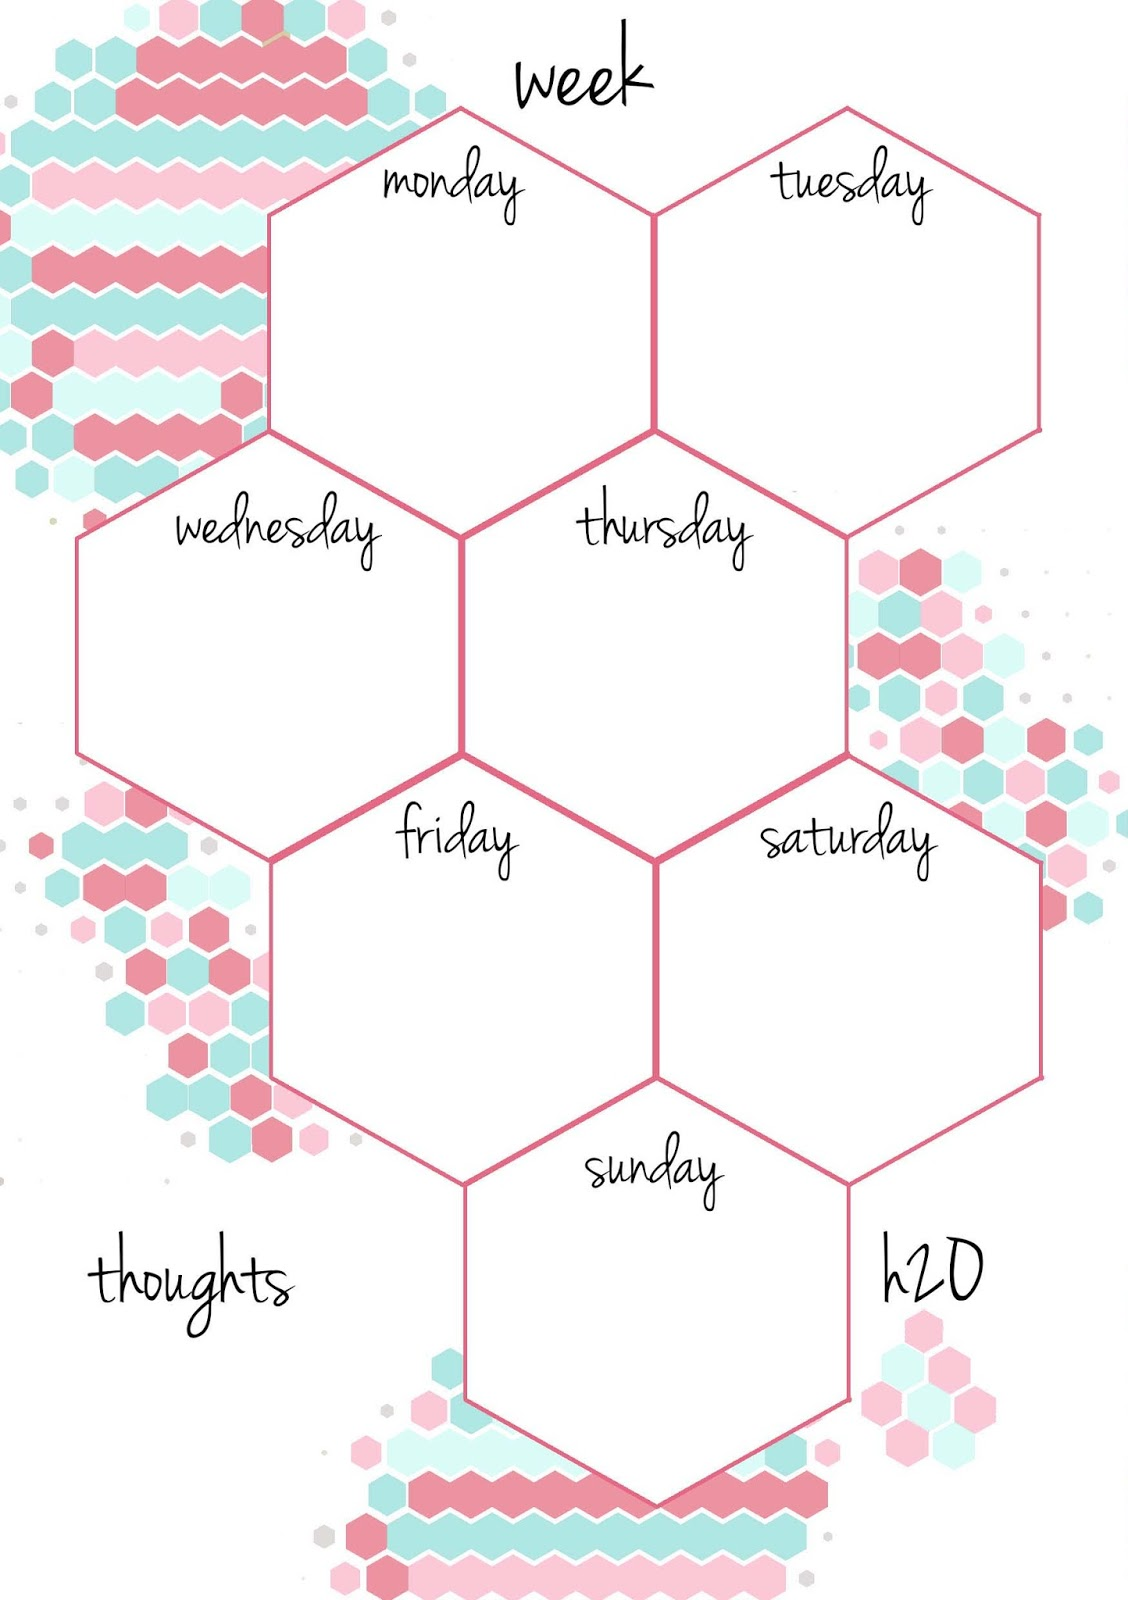 Pb and j studio free printable planner inserts candy for Online planner